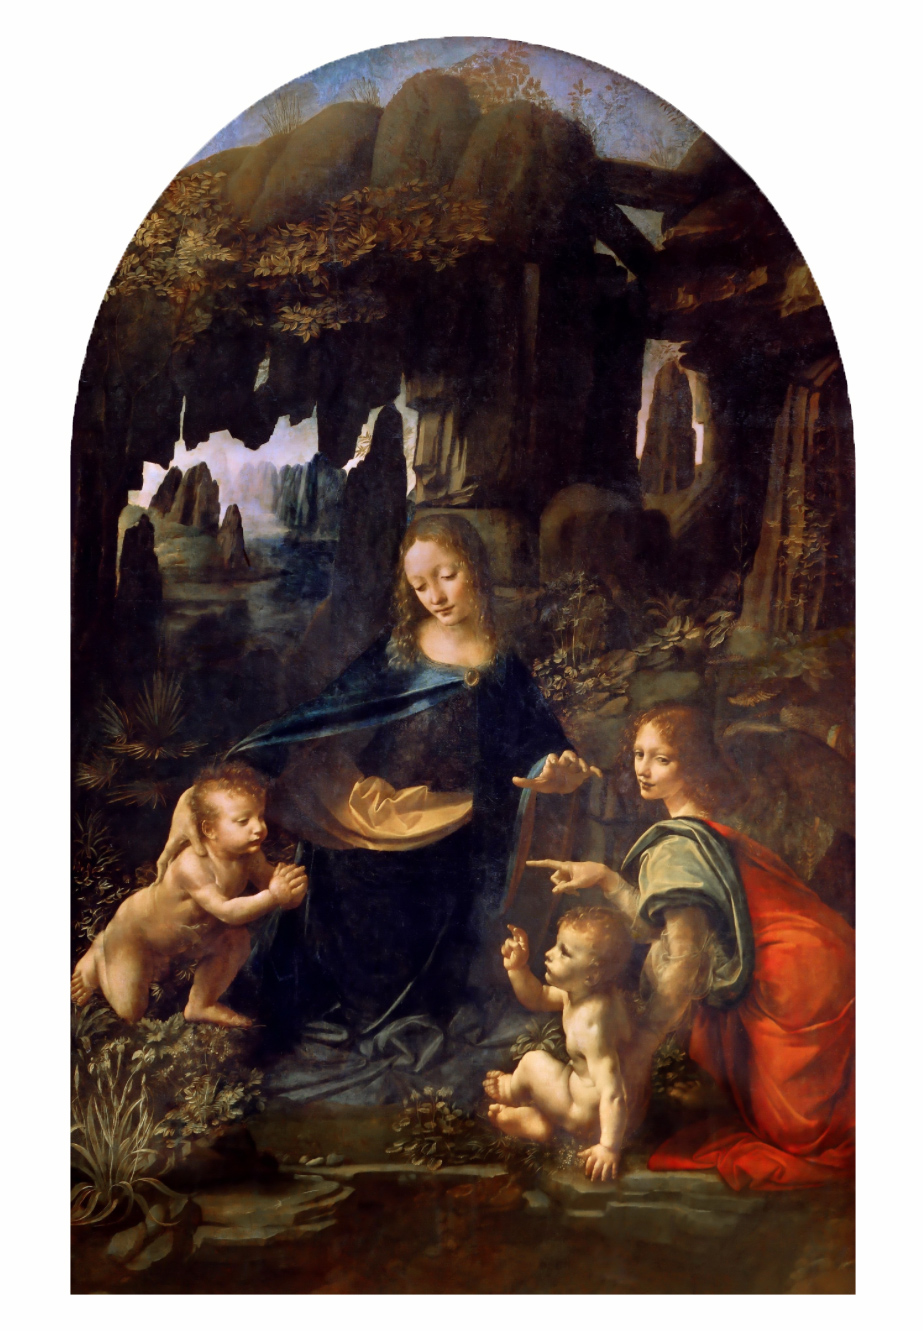 The Archetypal image of the Madonna on the Rocks expresses the gentle warmth of the Feminine Principle, welcoming the child in early life, bringing comfort even when circumstances and environment are harsh and unfavorable.